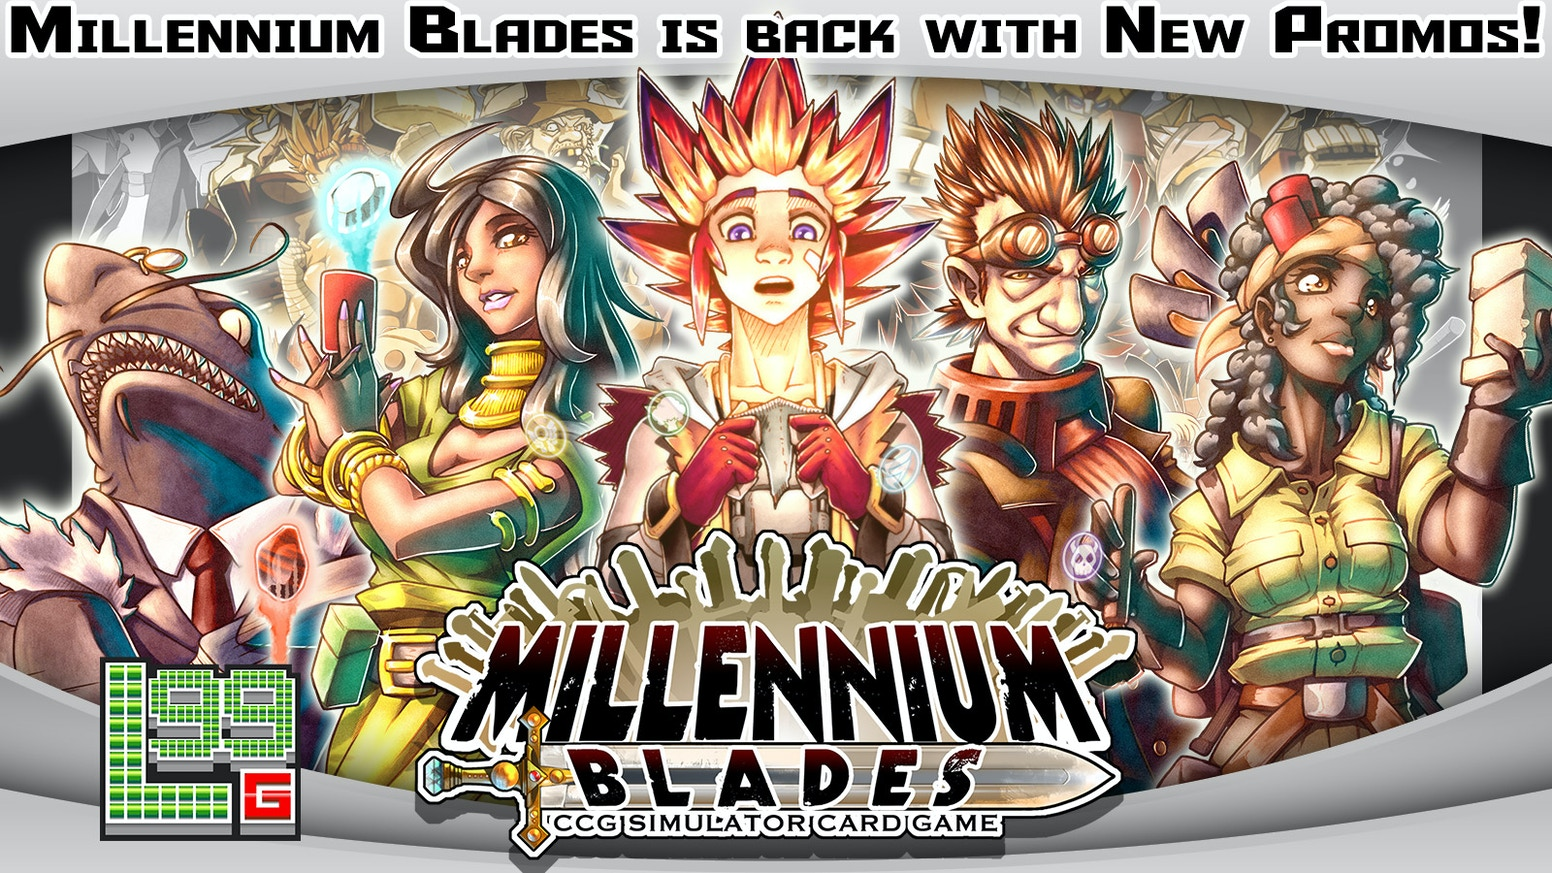 Millennium Blades is the top-reviewed CCG Simulator Board Game, where you buy, sell, collect, trade, and duel to become world champion!